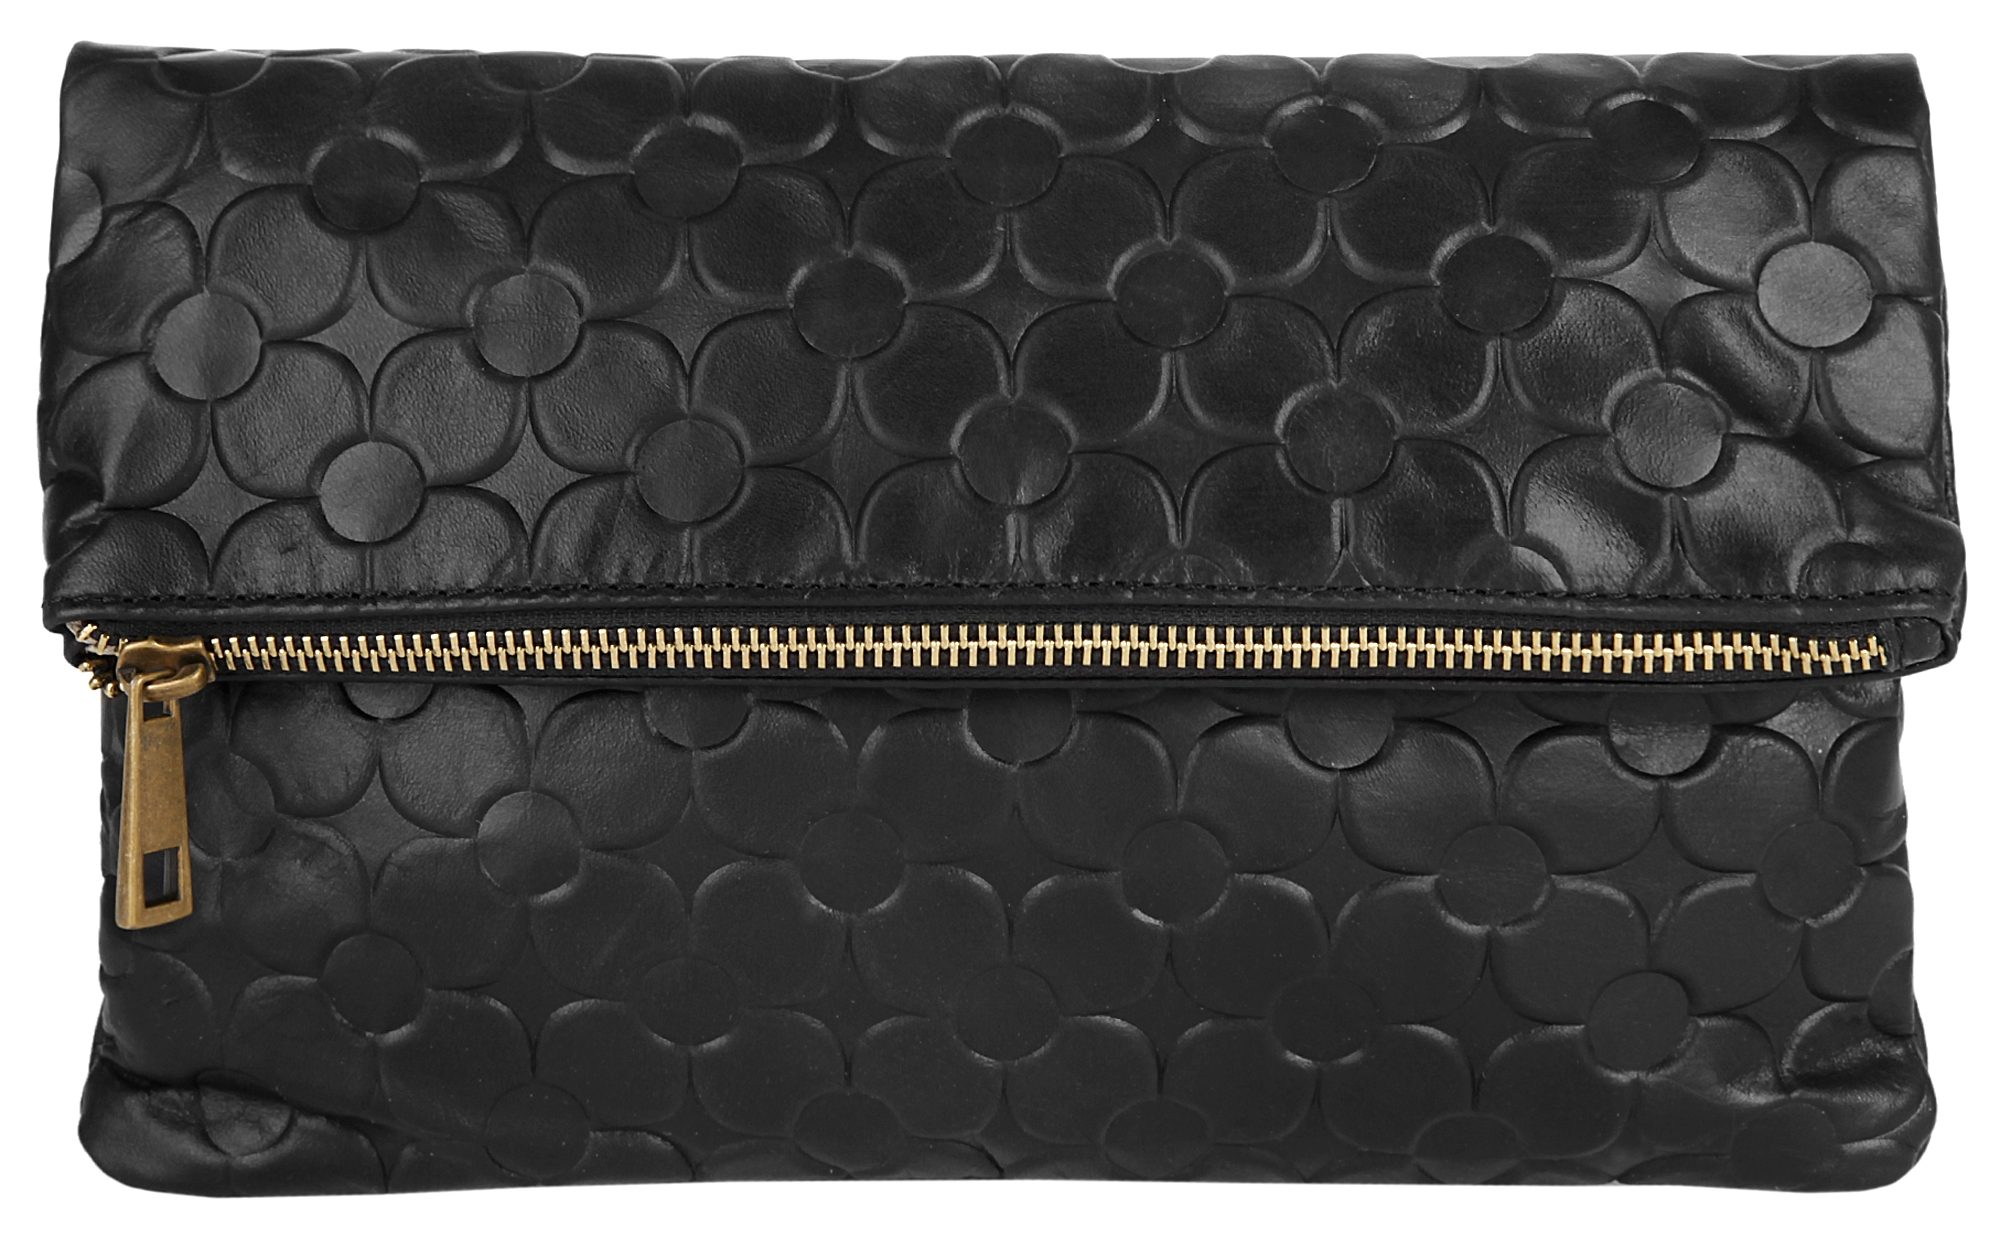 Samantha Look Leder Damen Clutch